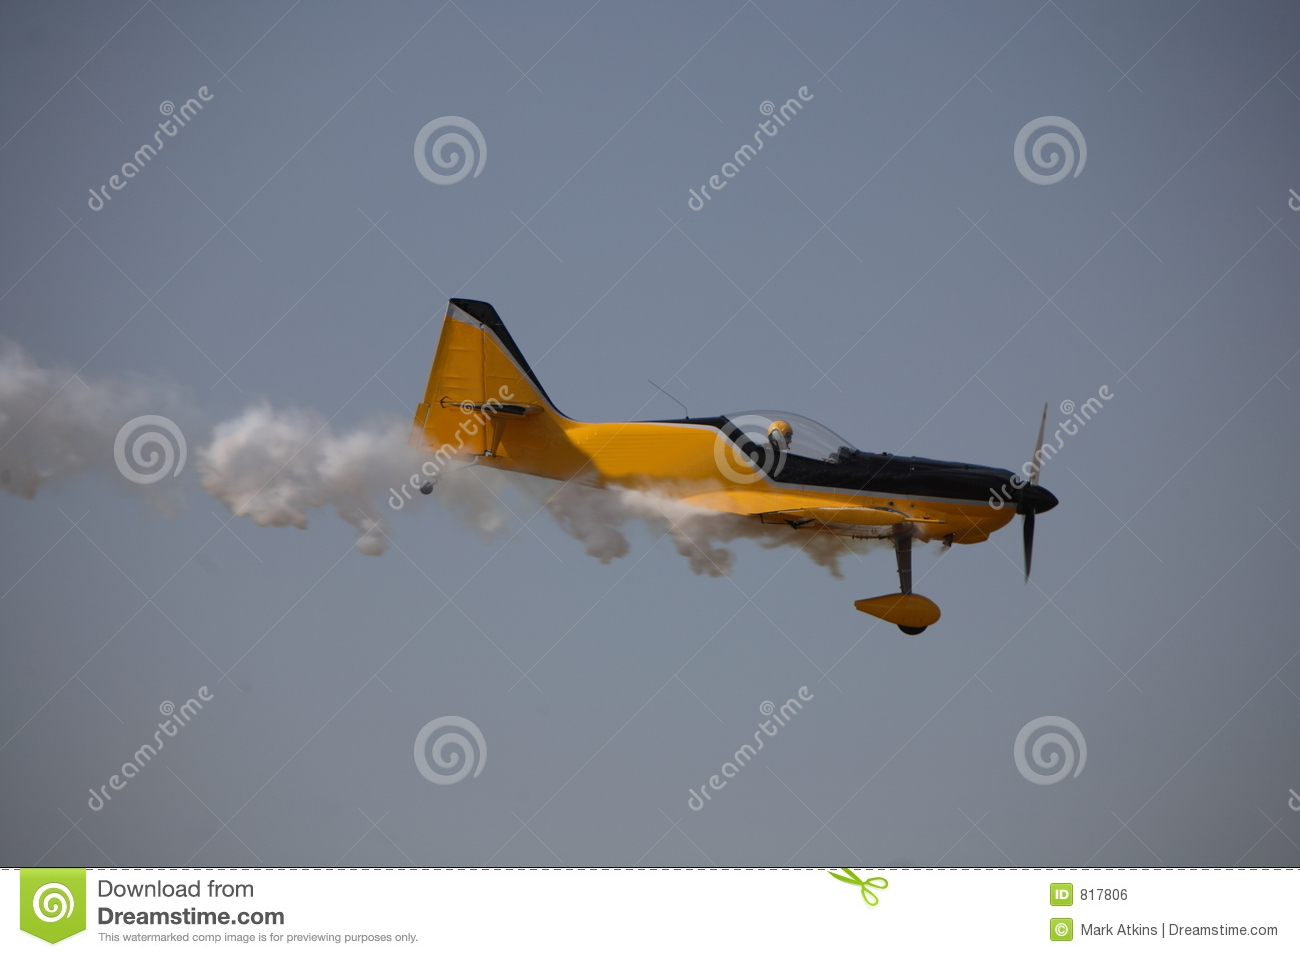 Smoking aircraft.